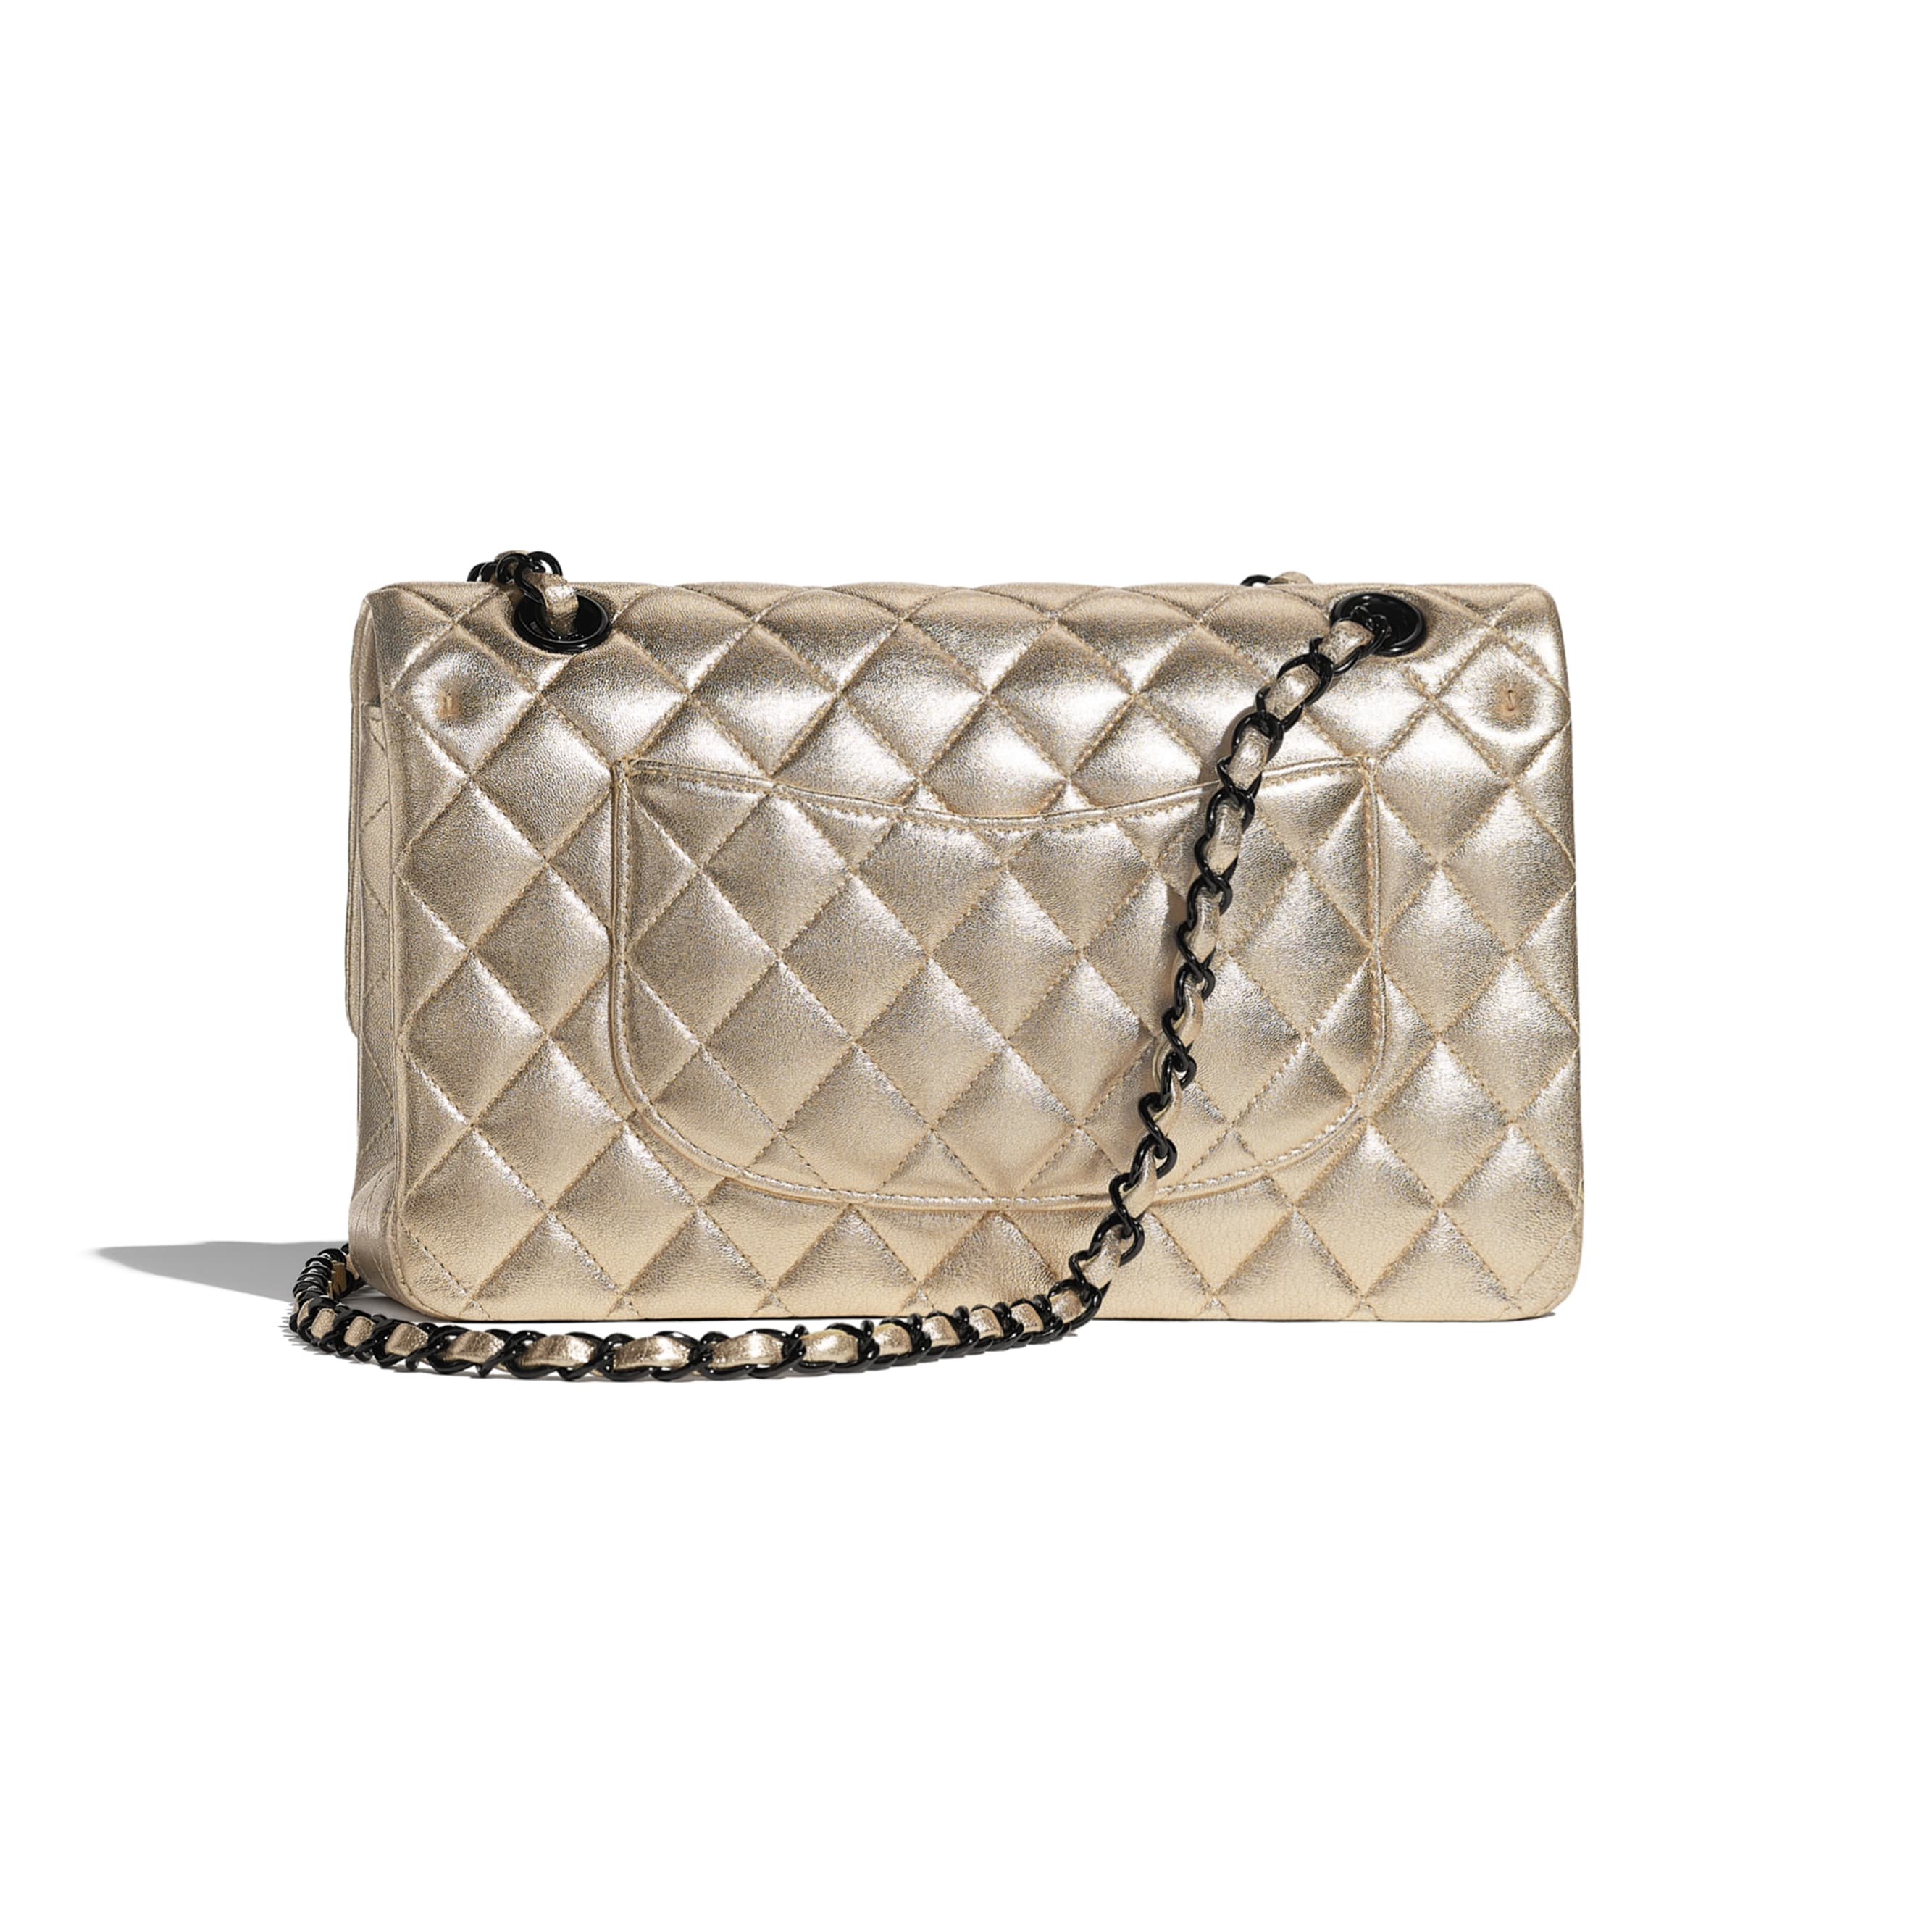 Classic Handbag - Gold - Metallic Lambskin & Black Metal - CHANEL - Alternative view - see standard sized version